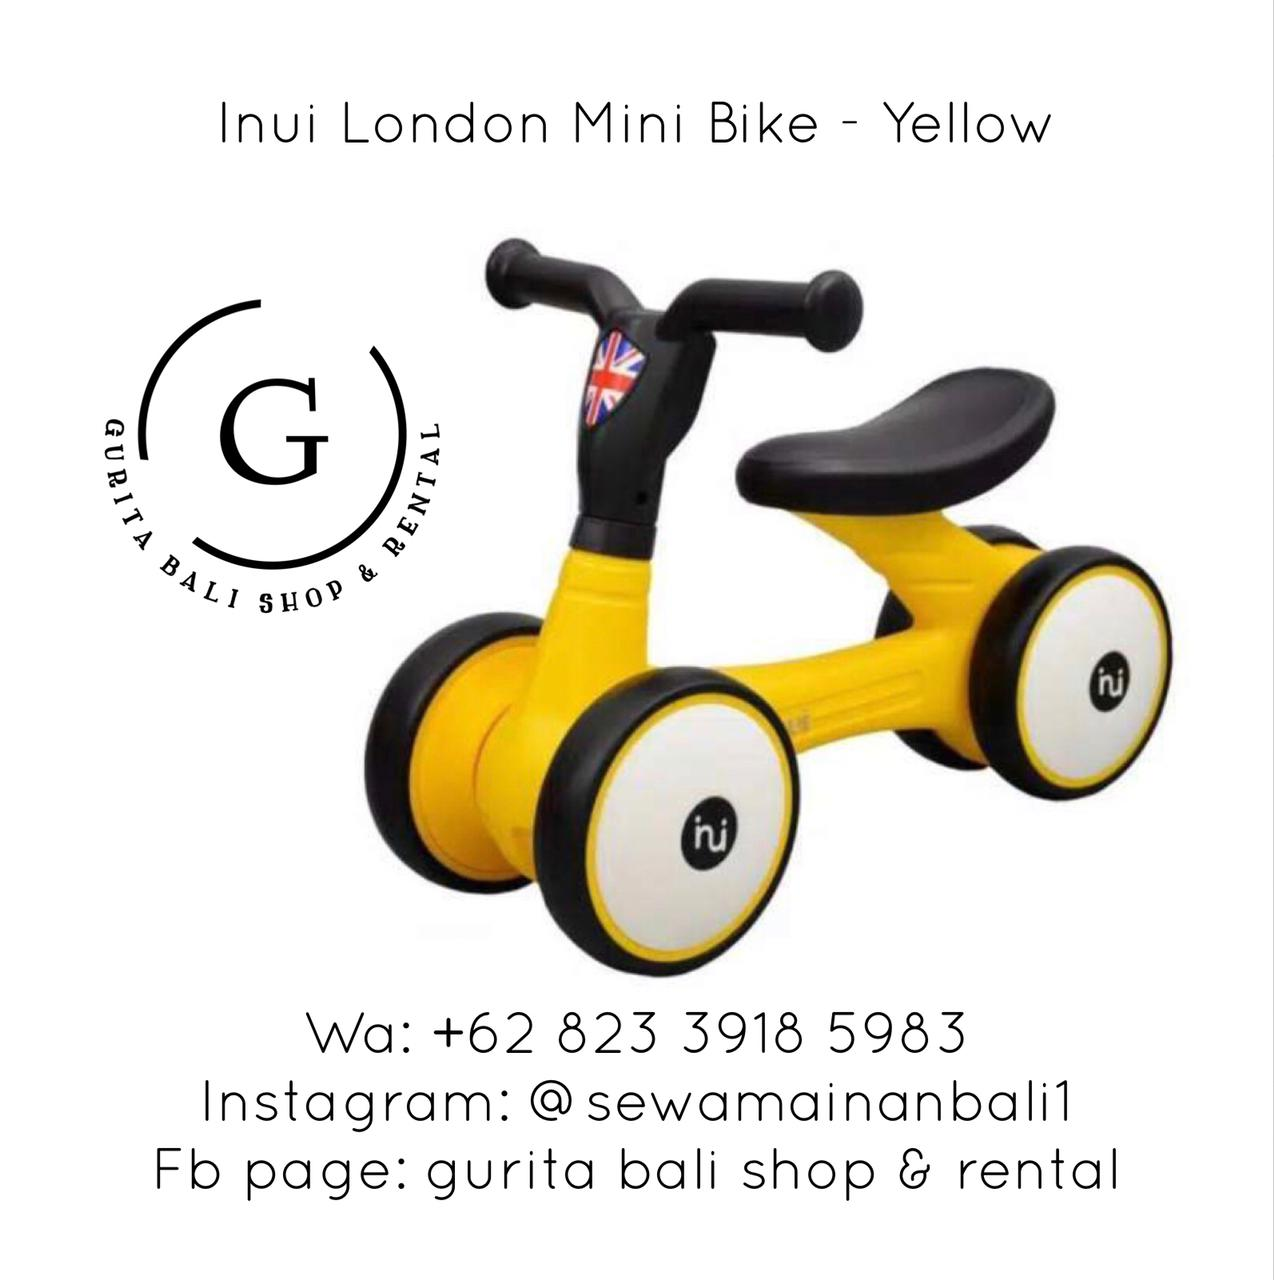 INUI LONDON MINI BIKE - YELLOW